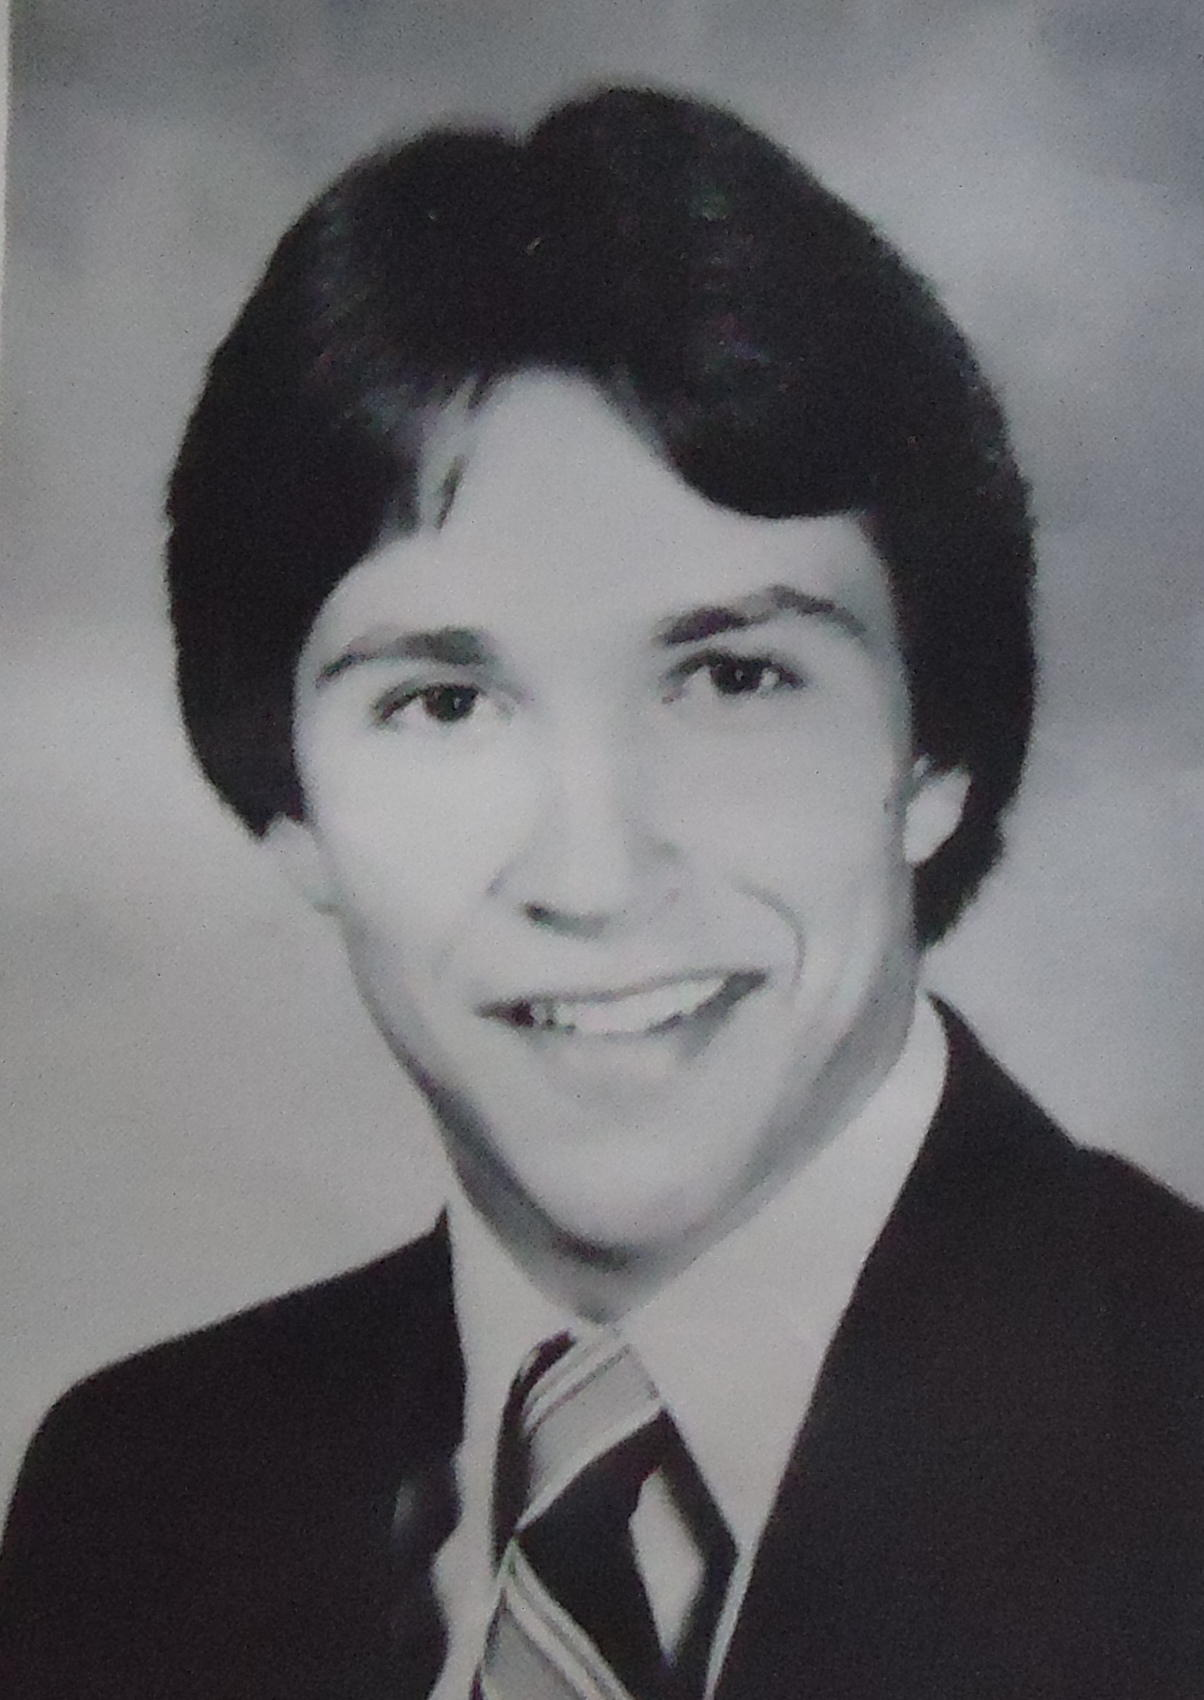 50 Hilarious Celebrity Yearbook Photos - shared.com